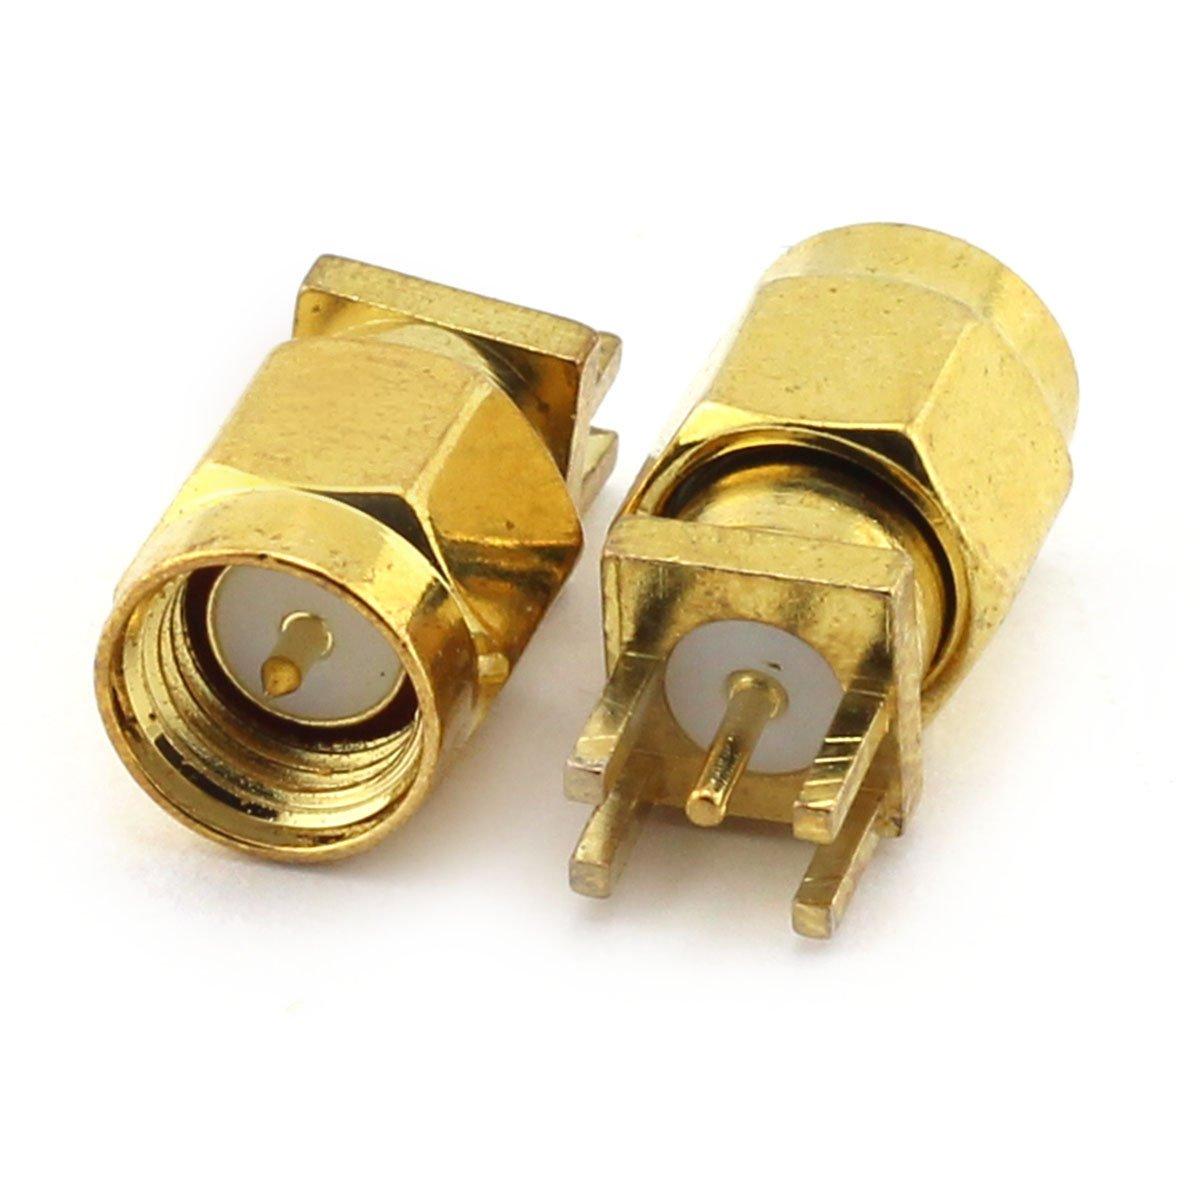 2PCS SO239 UHF Female to Female adapter Wi-Fi Radios External Antenna TM SO-239 Connector with Panel Coaxial cable RF Coaxial Coax Adapter for Antennas Eagles 4 Holes Wireless LAN Devices